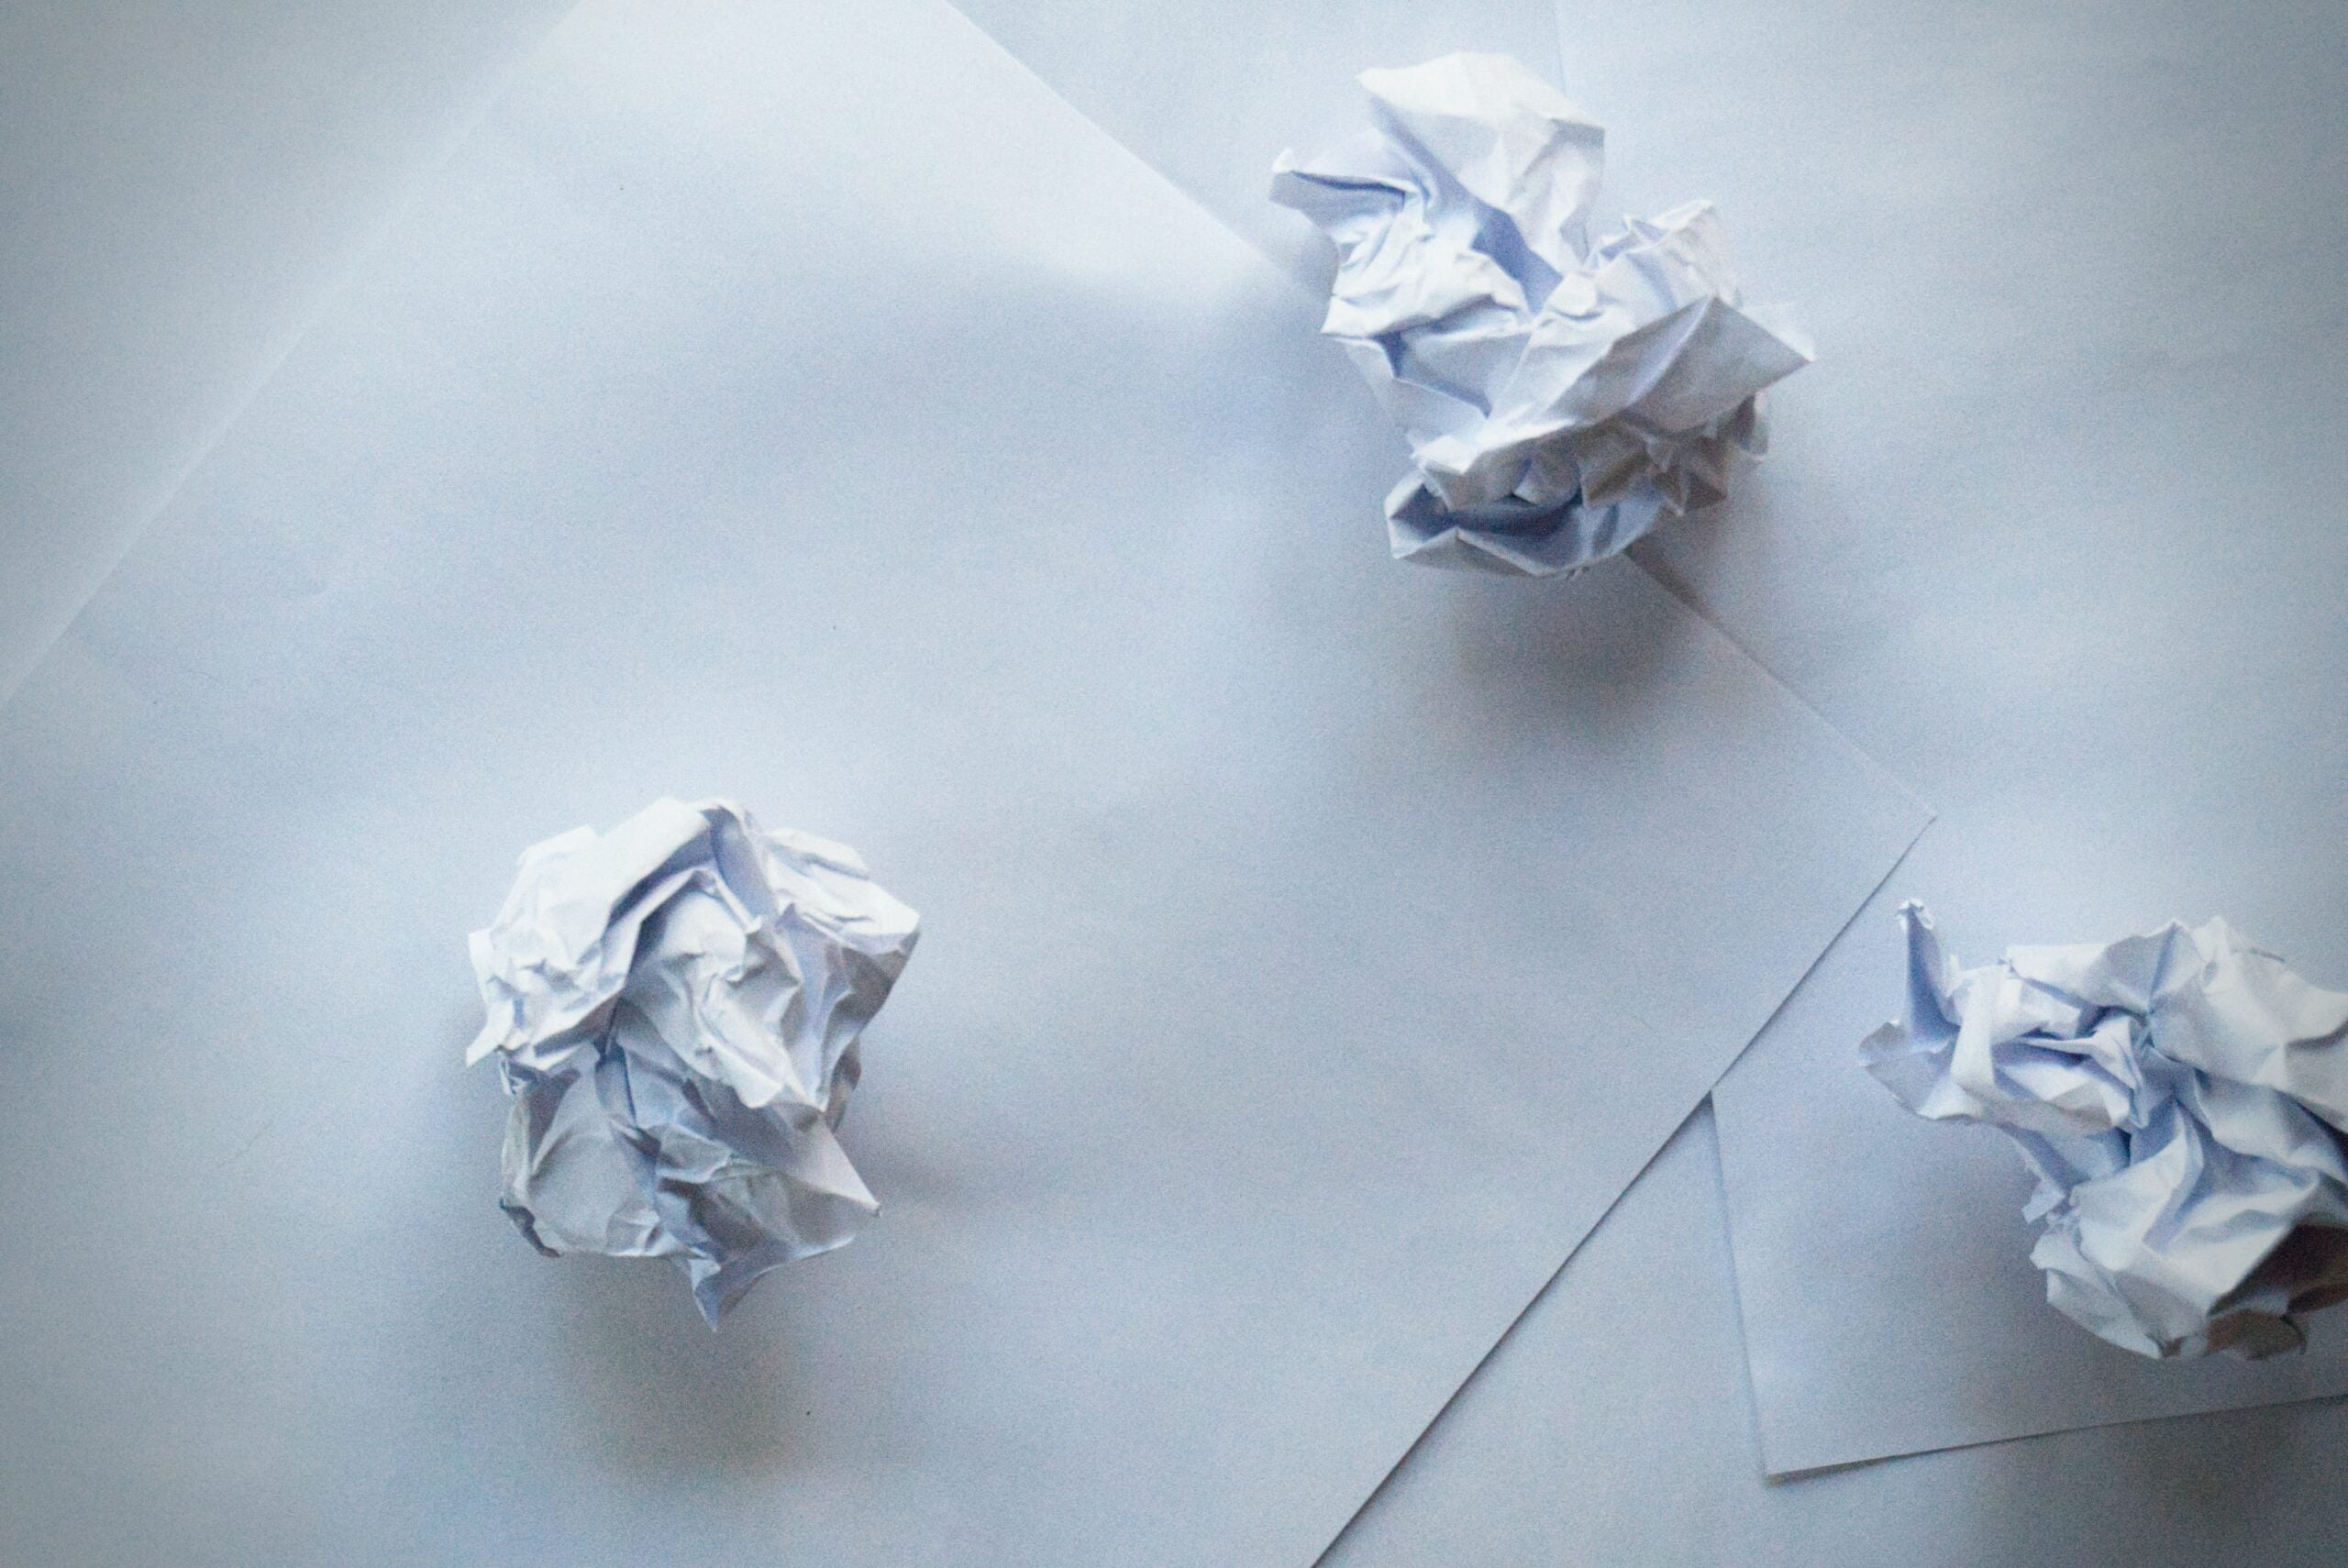 Crumpled up paper waste